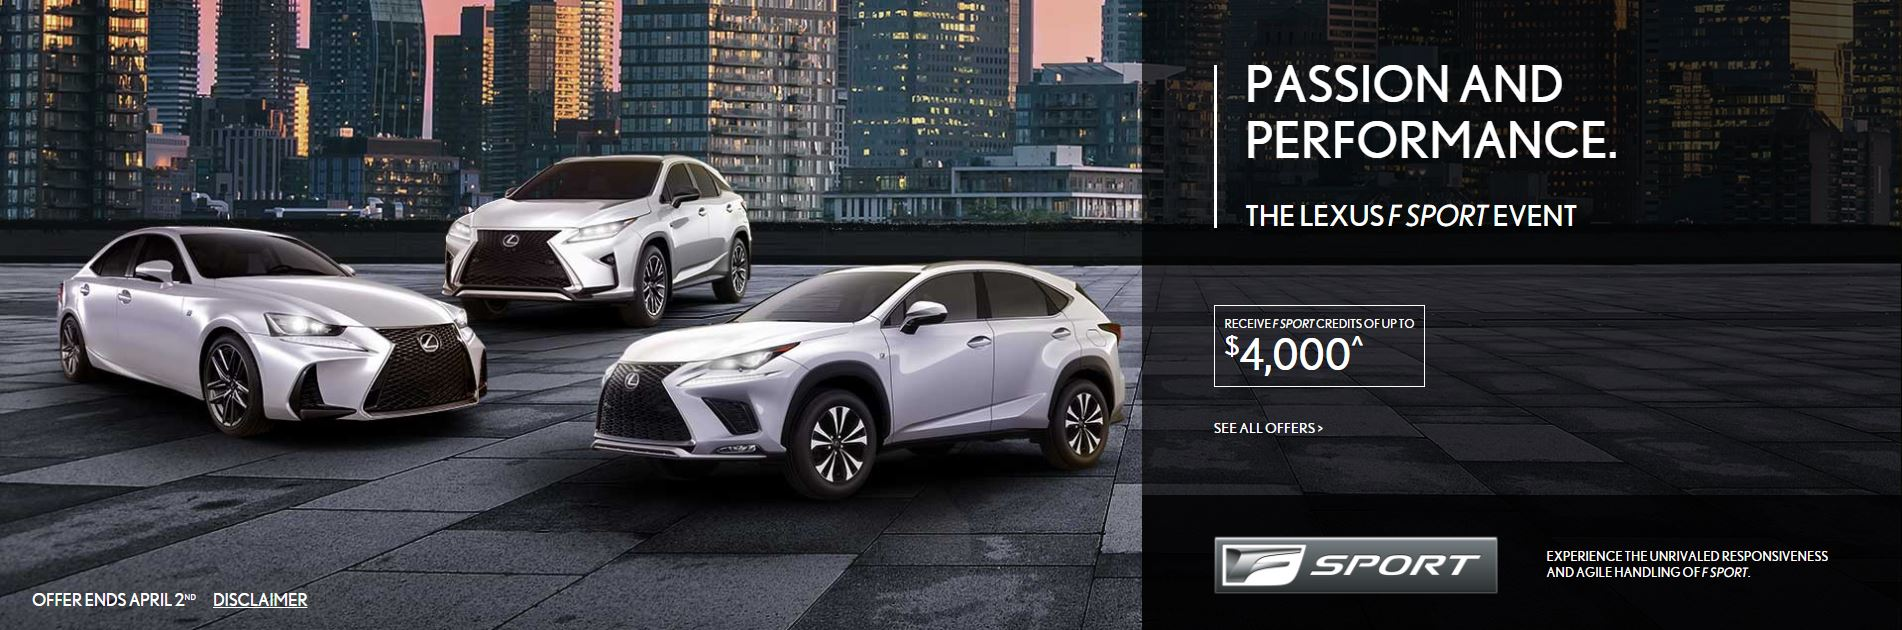 Lexus March Offers F Sport Event image